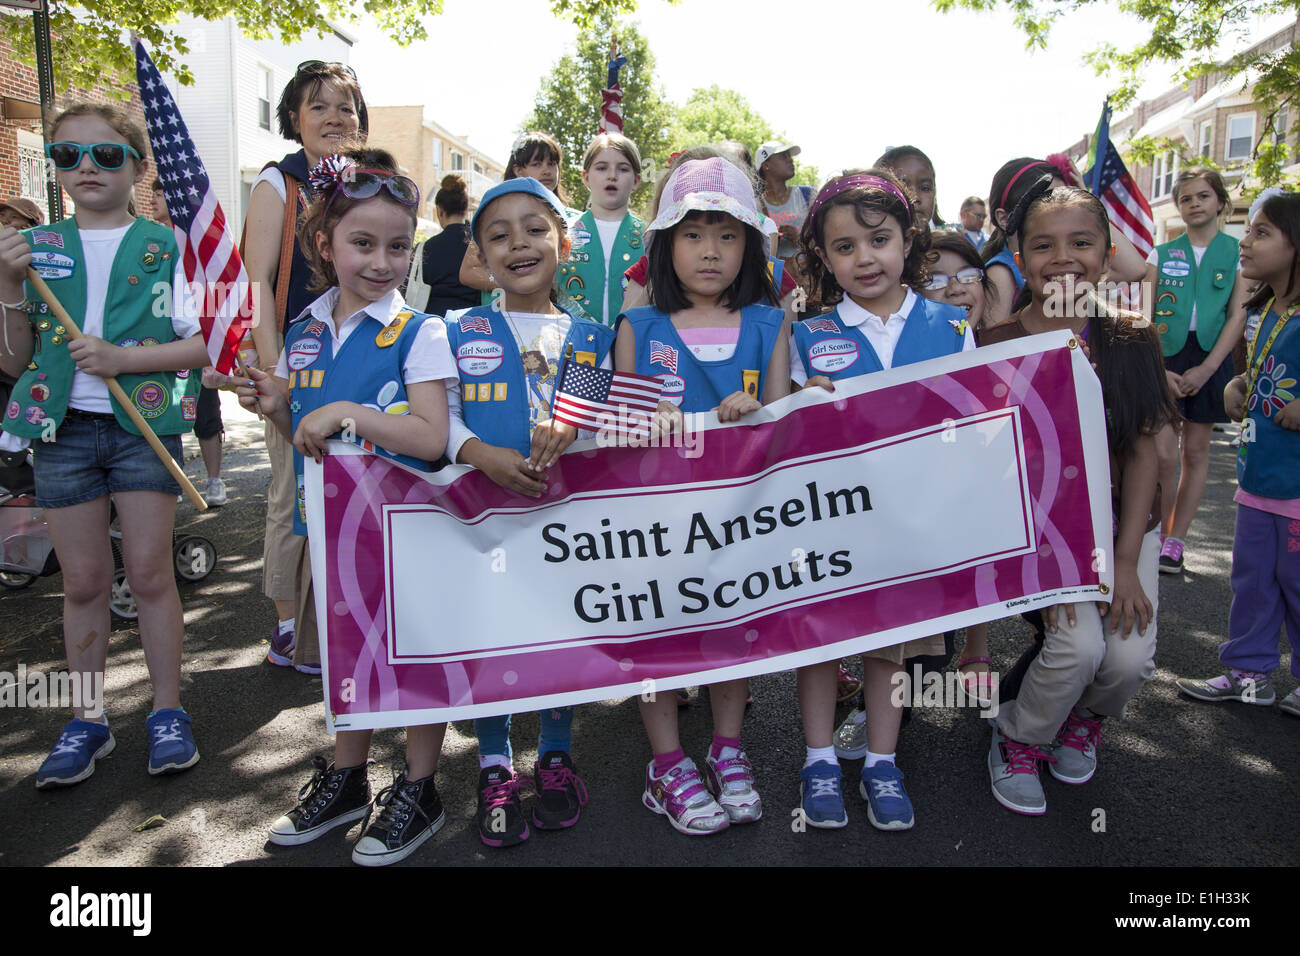 Girl Scout Troop Stock Photos & Girl Scout Troop Stock